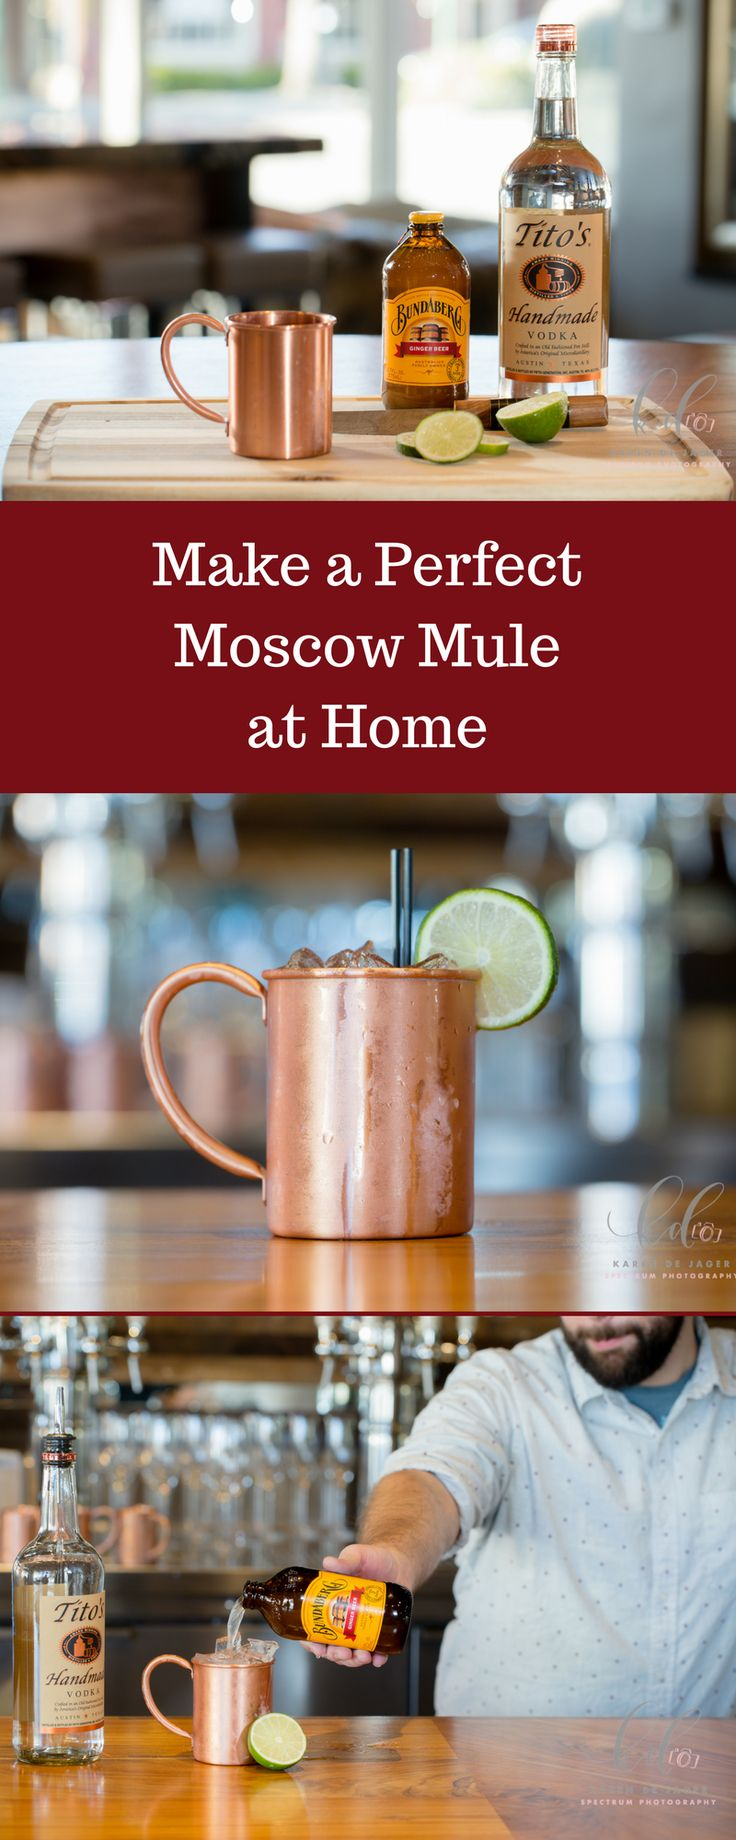 Make an amazing Moscow Mule at home. Here's the perfect recipe for an easy and delicious Moscow Mule. Get your copper mugs ready for this classic drink and a fun twist.